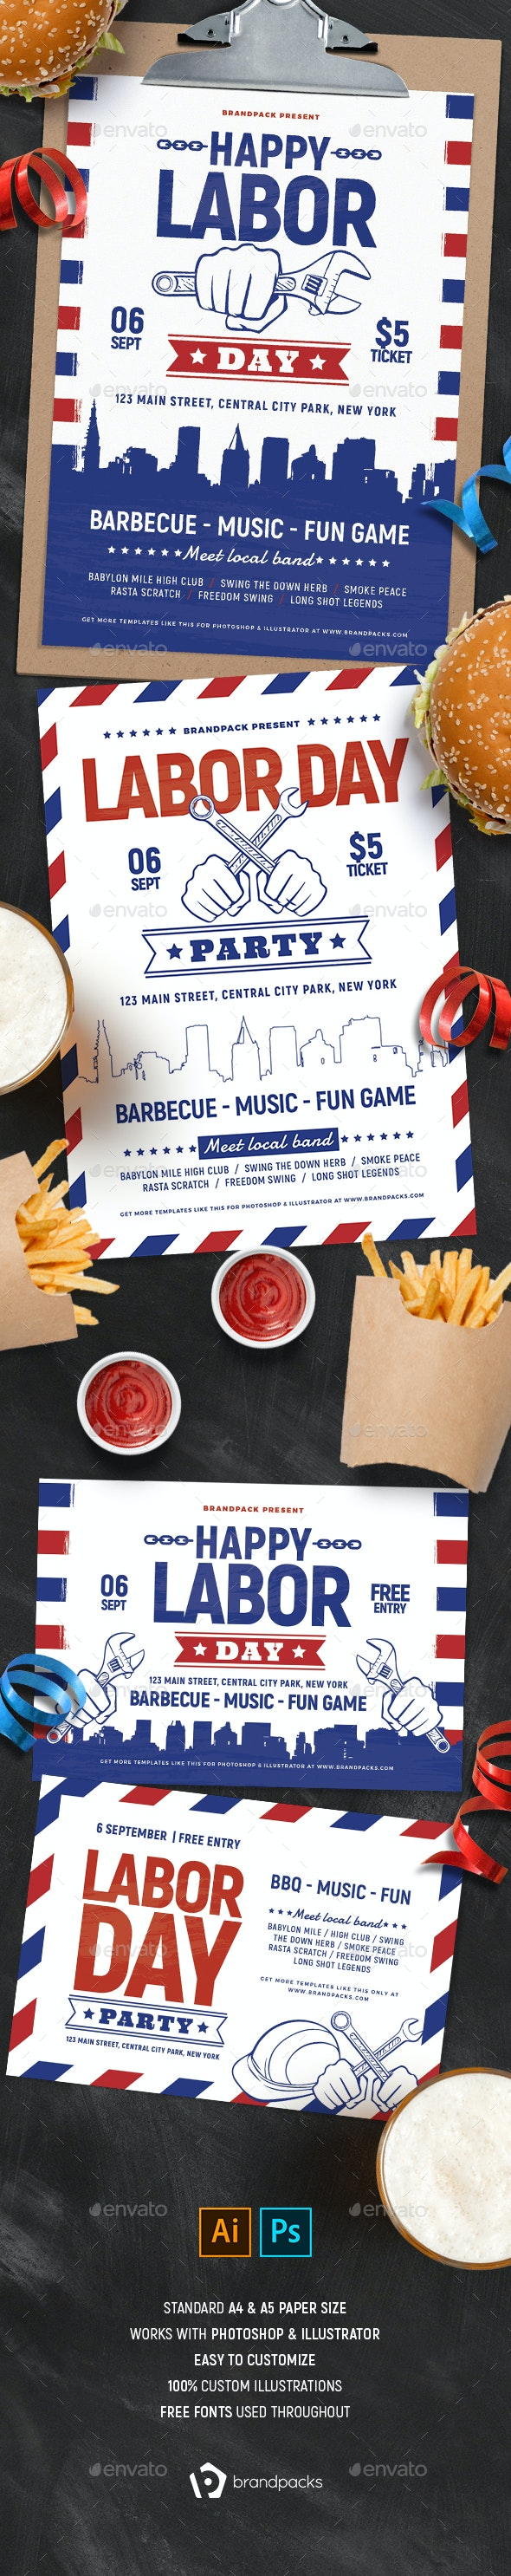 Labor Day Flyer Templates - Holidays Events